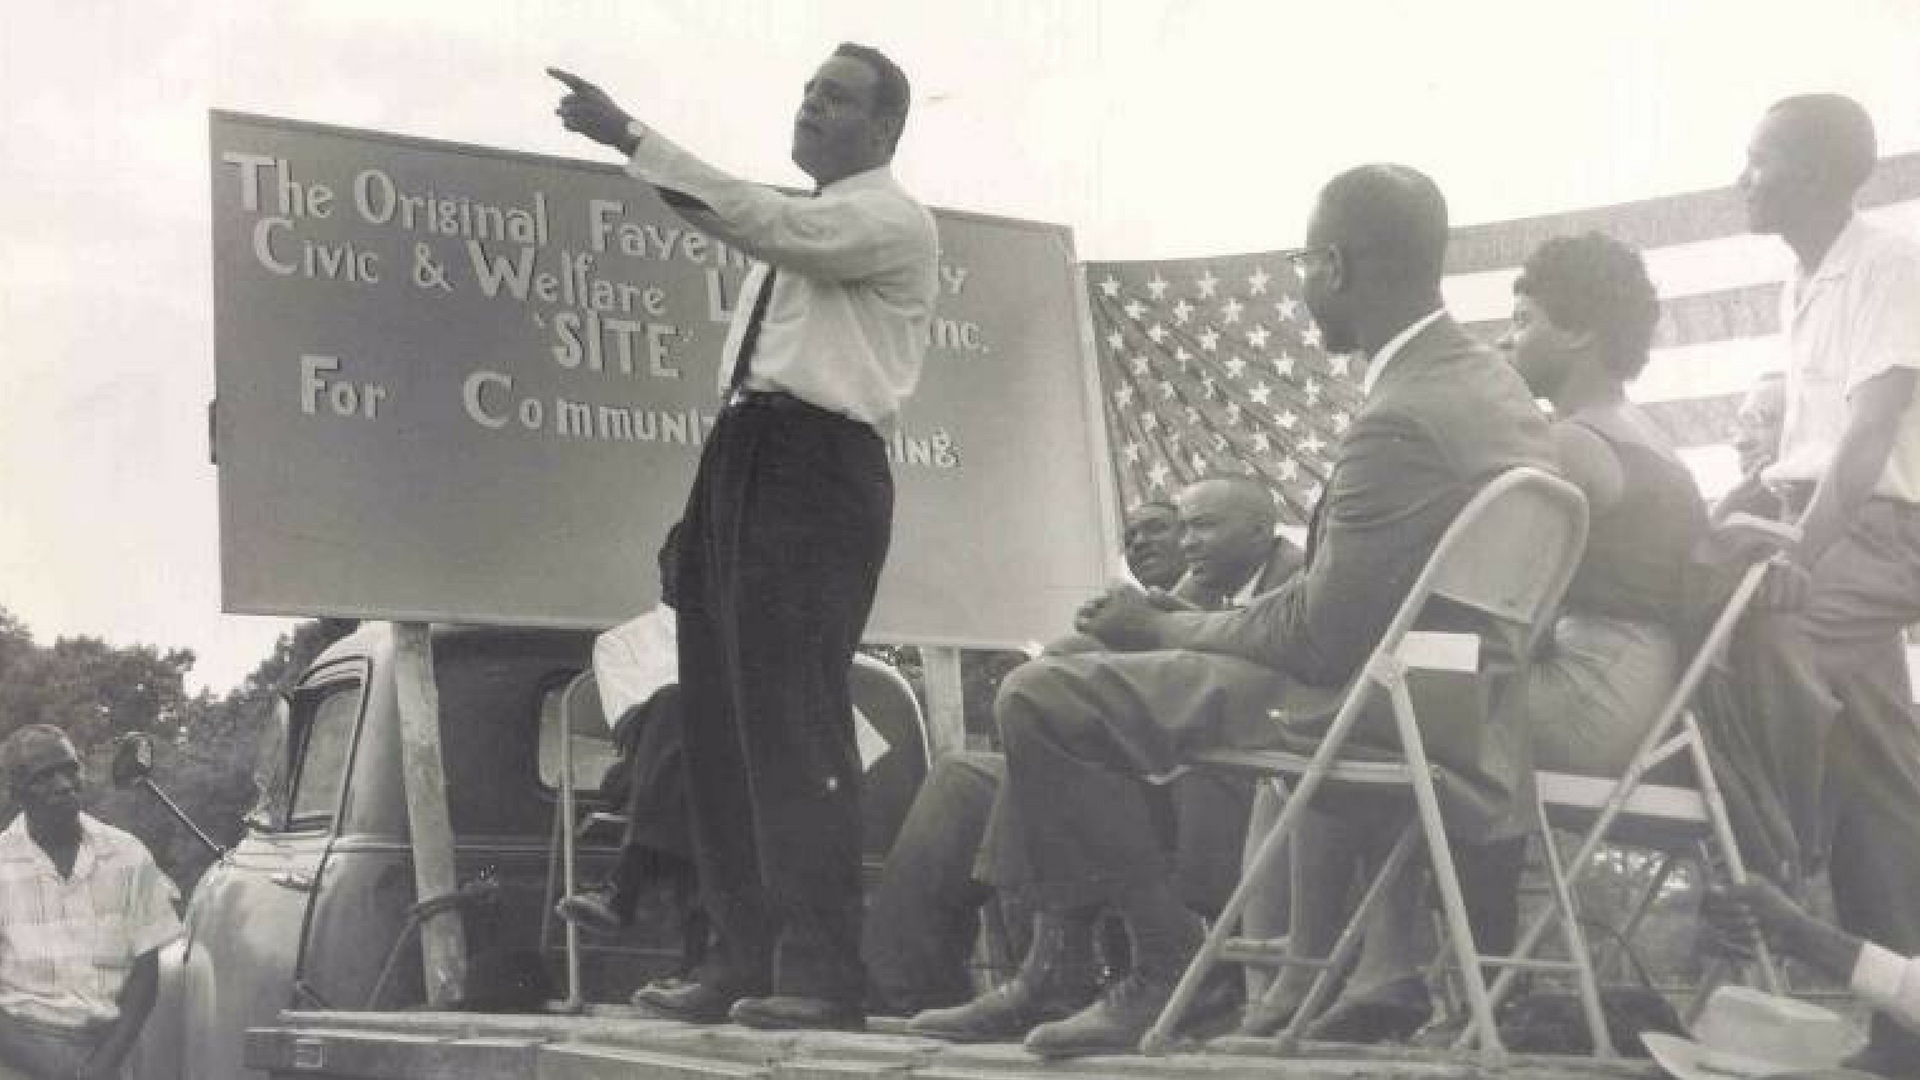 The movement was led and organized by the local Black community